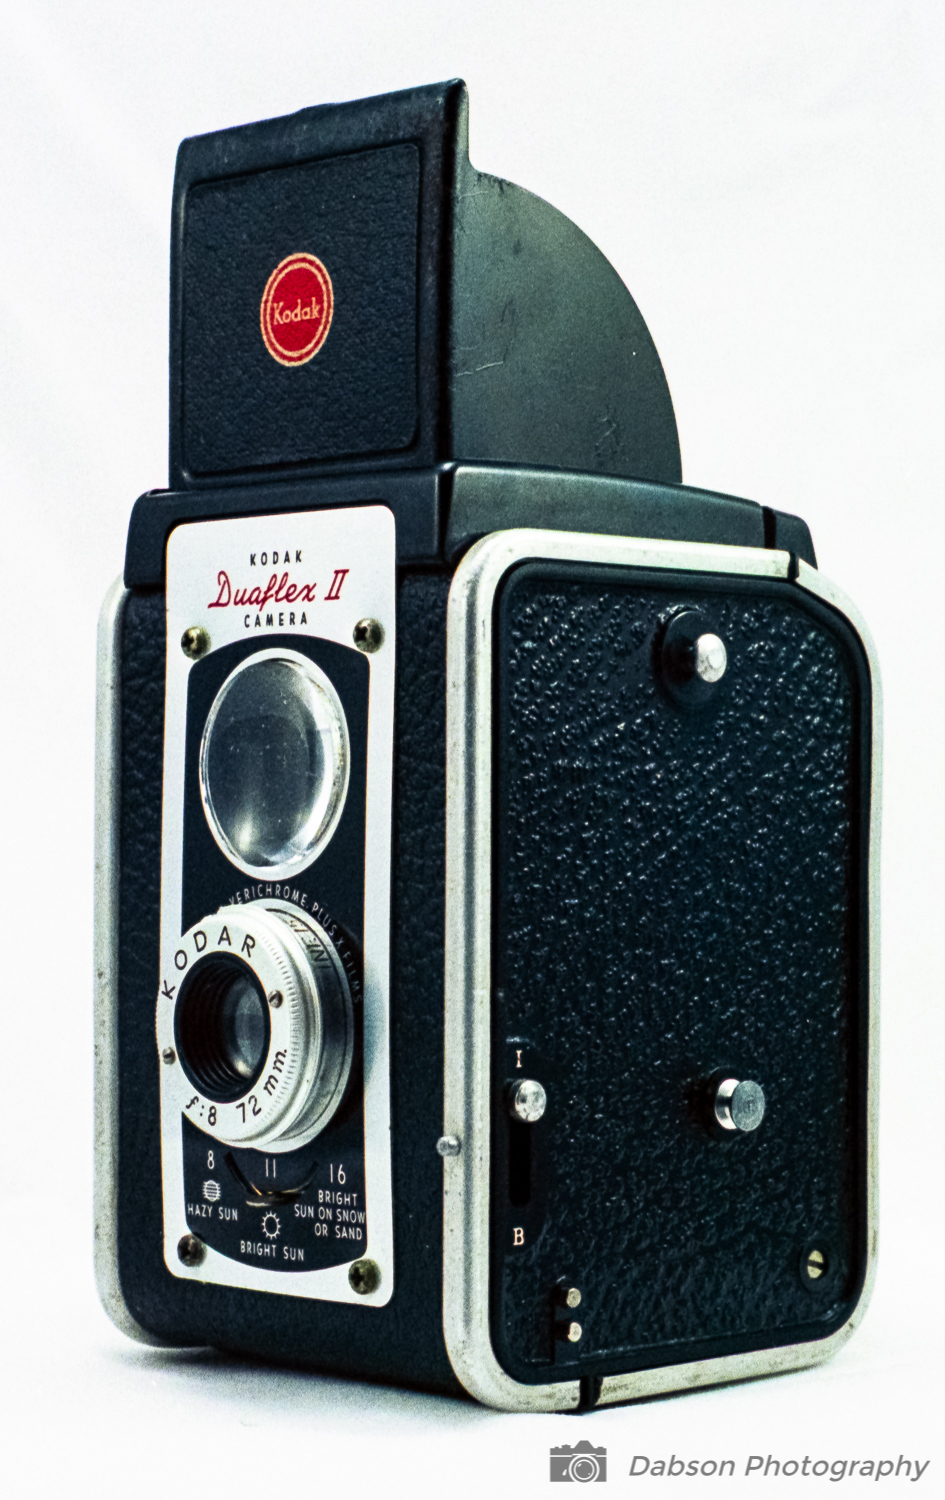 - Even with the viewfinder raised the camera is easily held with one hand, leaving the second hand free to actuate the shutter button.The Duaflex II is compatible with an optional flash attachment.  This attachment mounts to the left side of the camera to the lugs shown in the photo. There is a shutter speed setting to use 'B' setting for Bulb mode.  The speed used for flash photography would depend on which type of flash bulb is used.